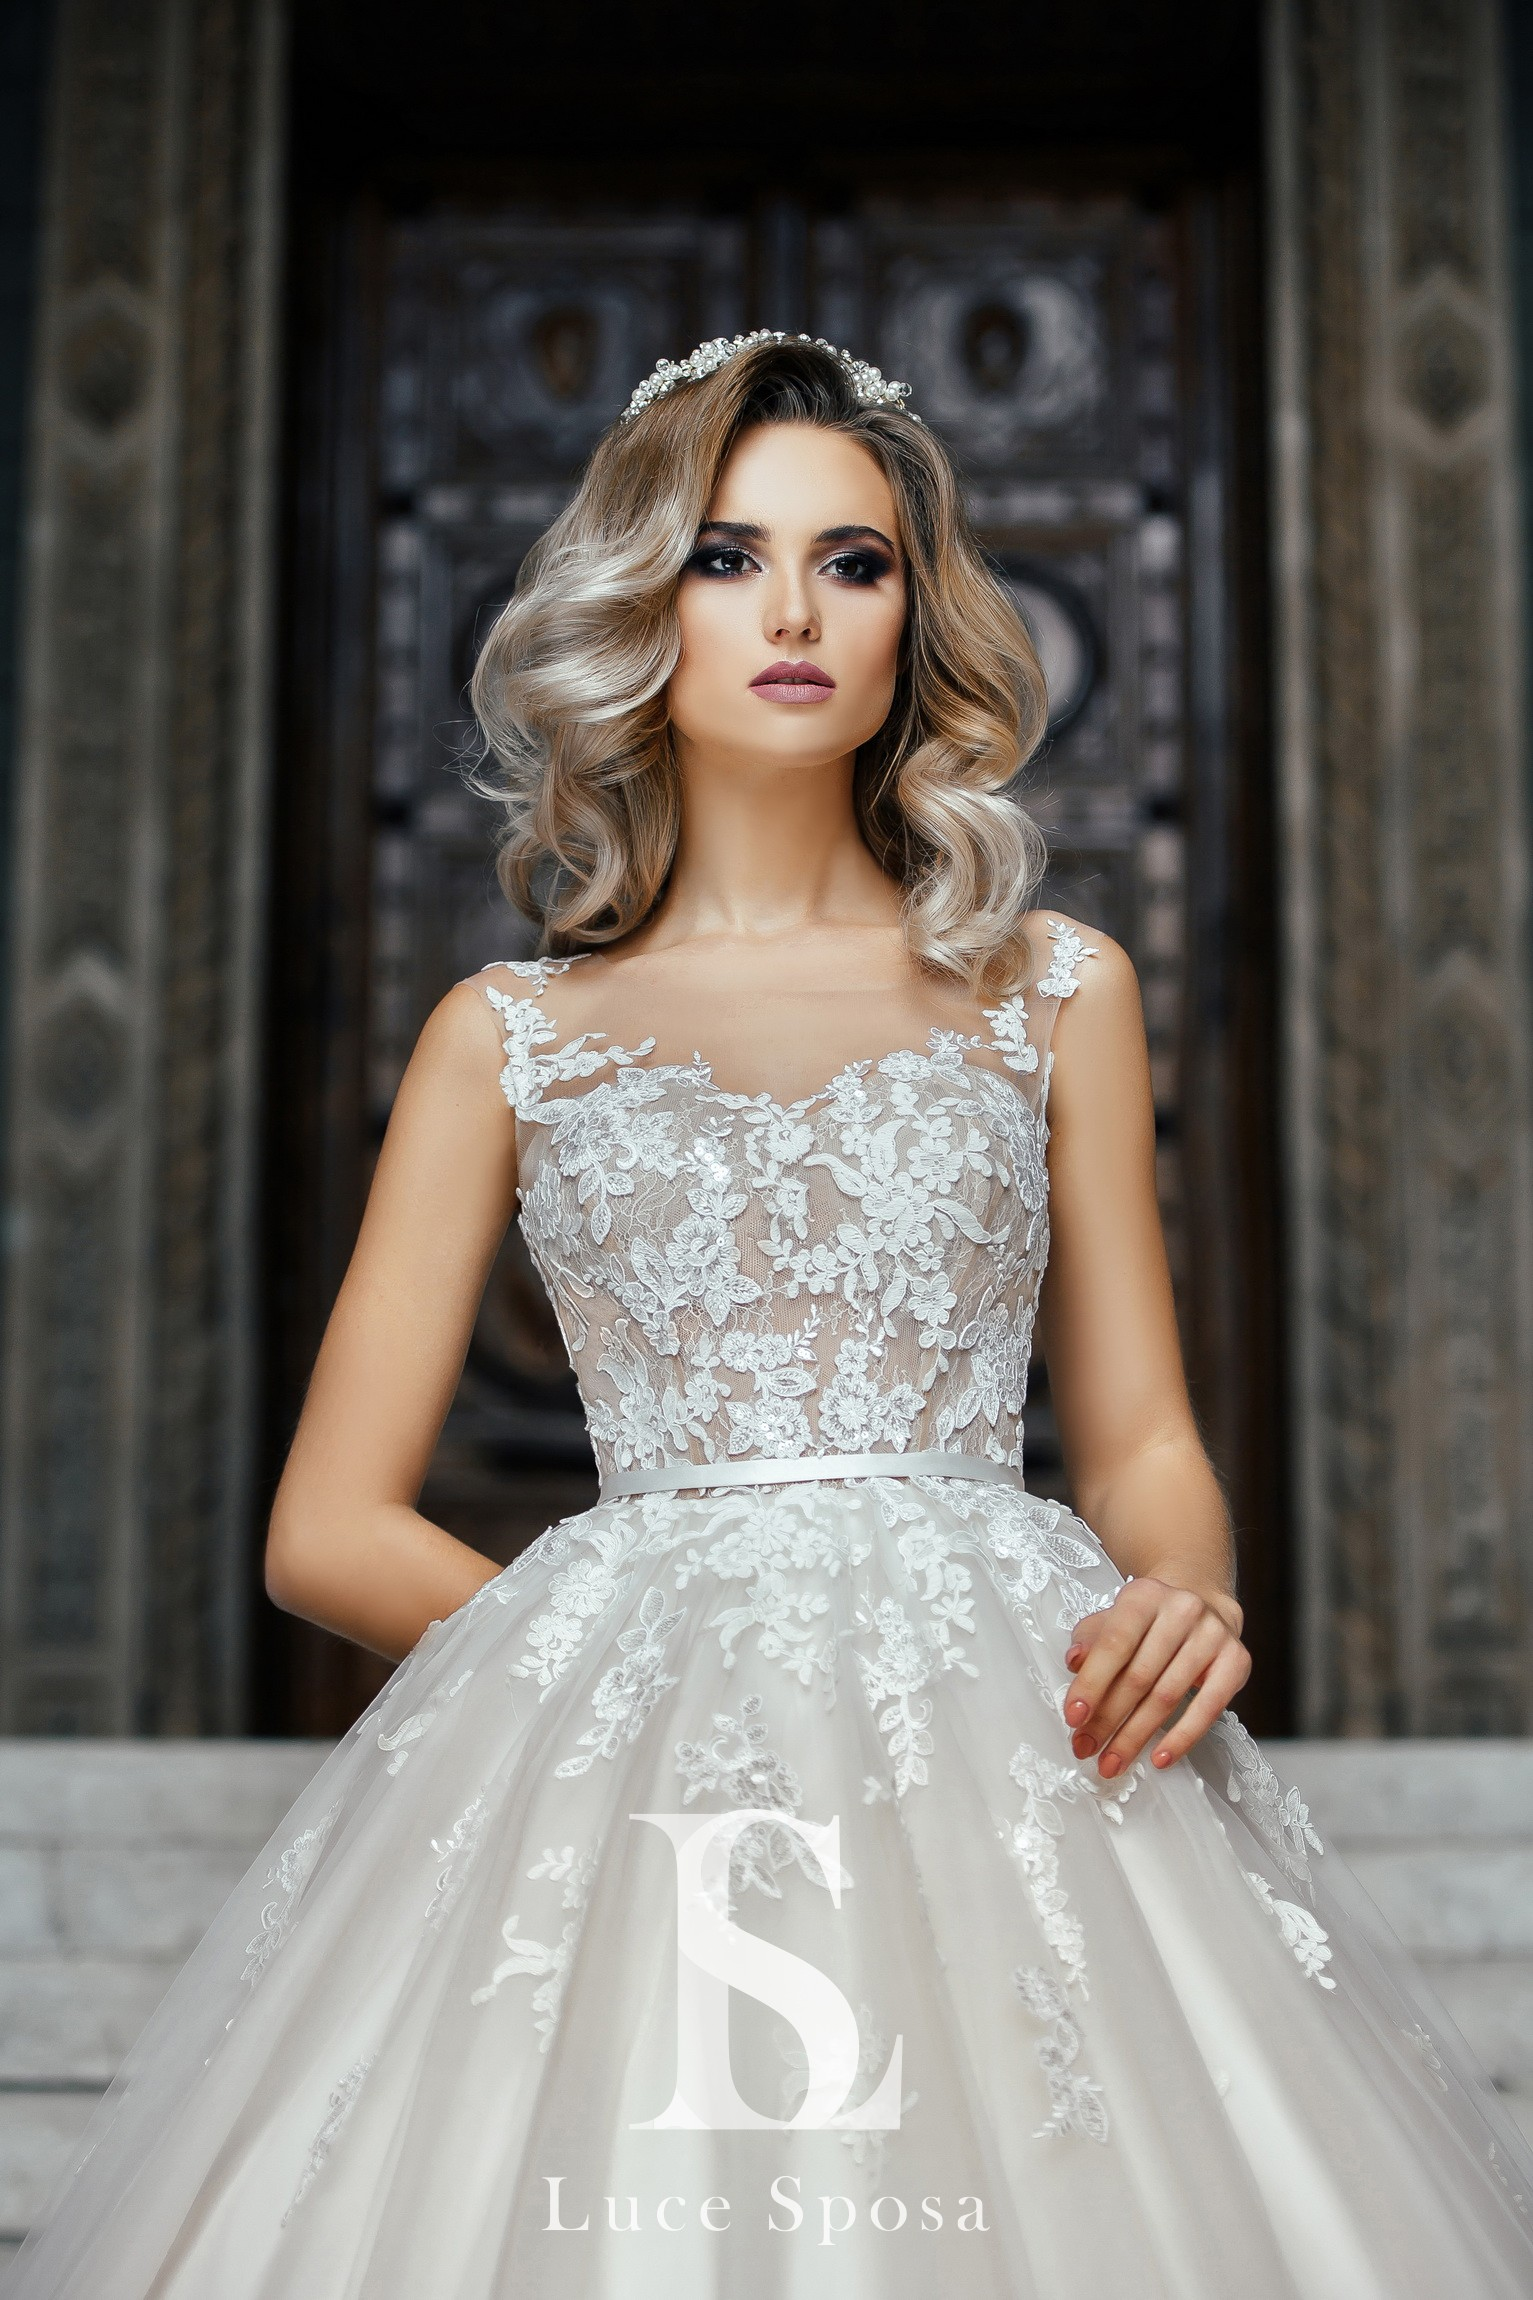 https://lucesposa.com/images/stories/virtuemart/product/ABB_36496.jpg